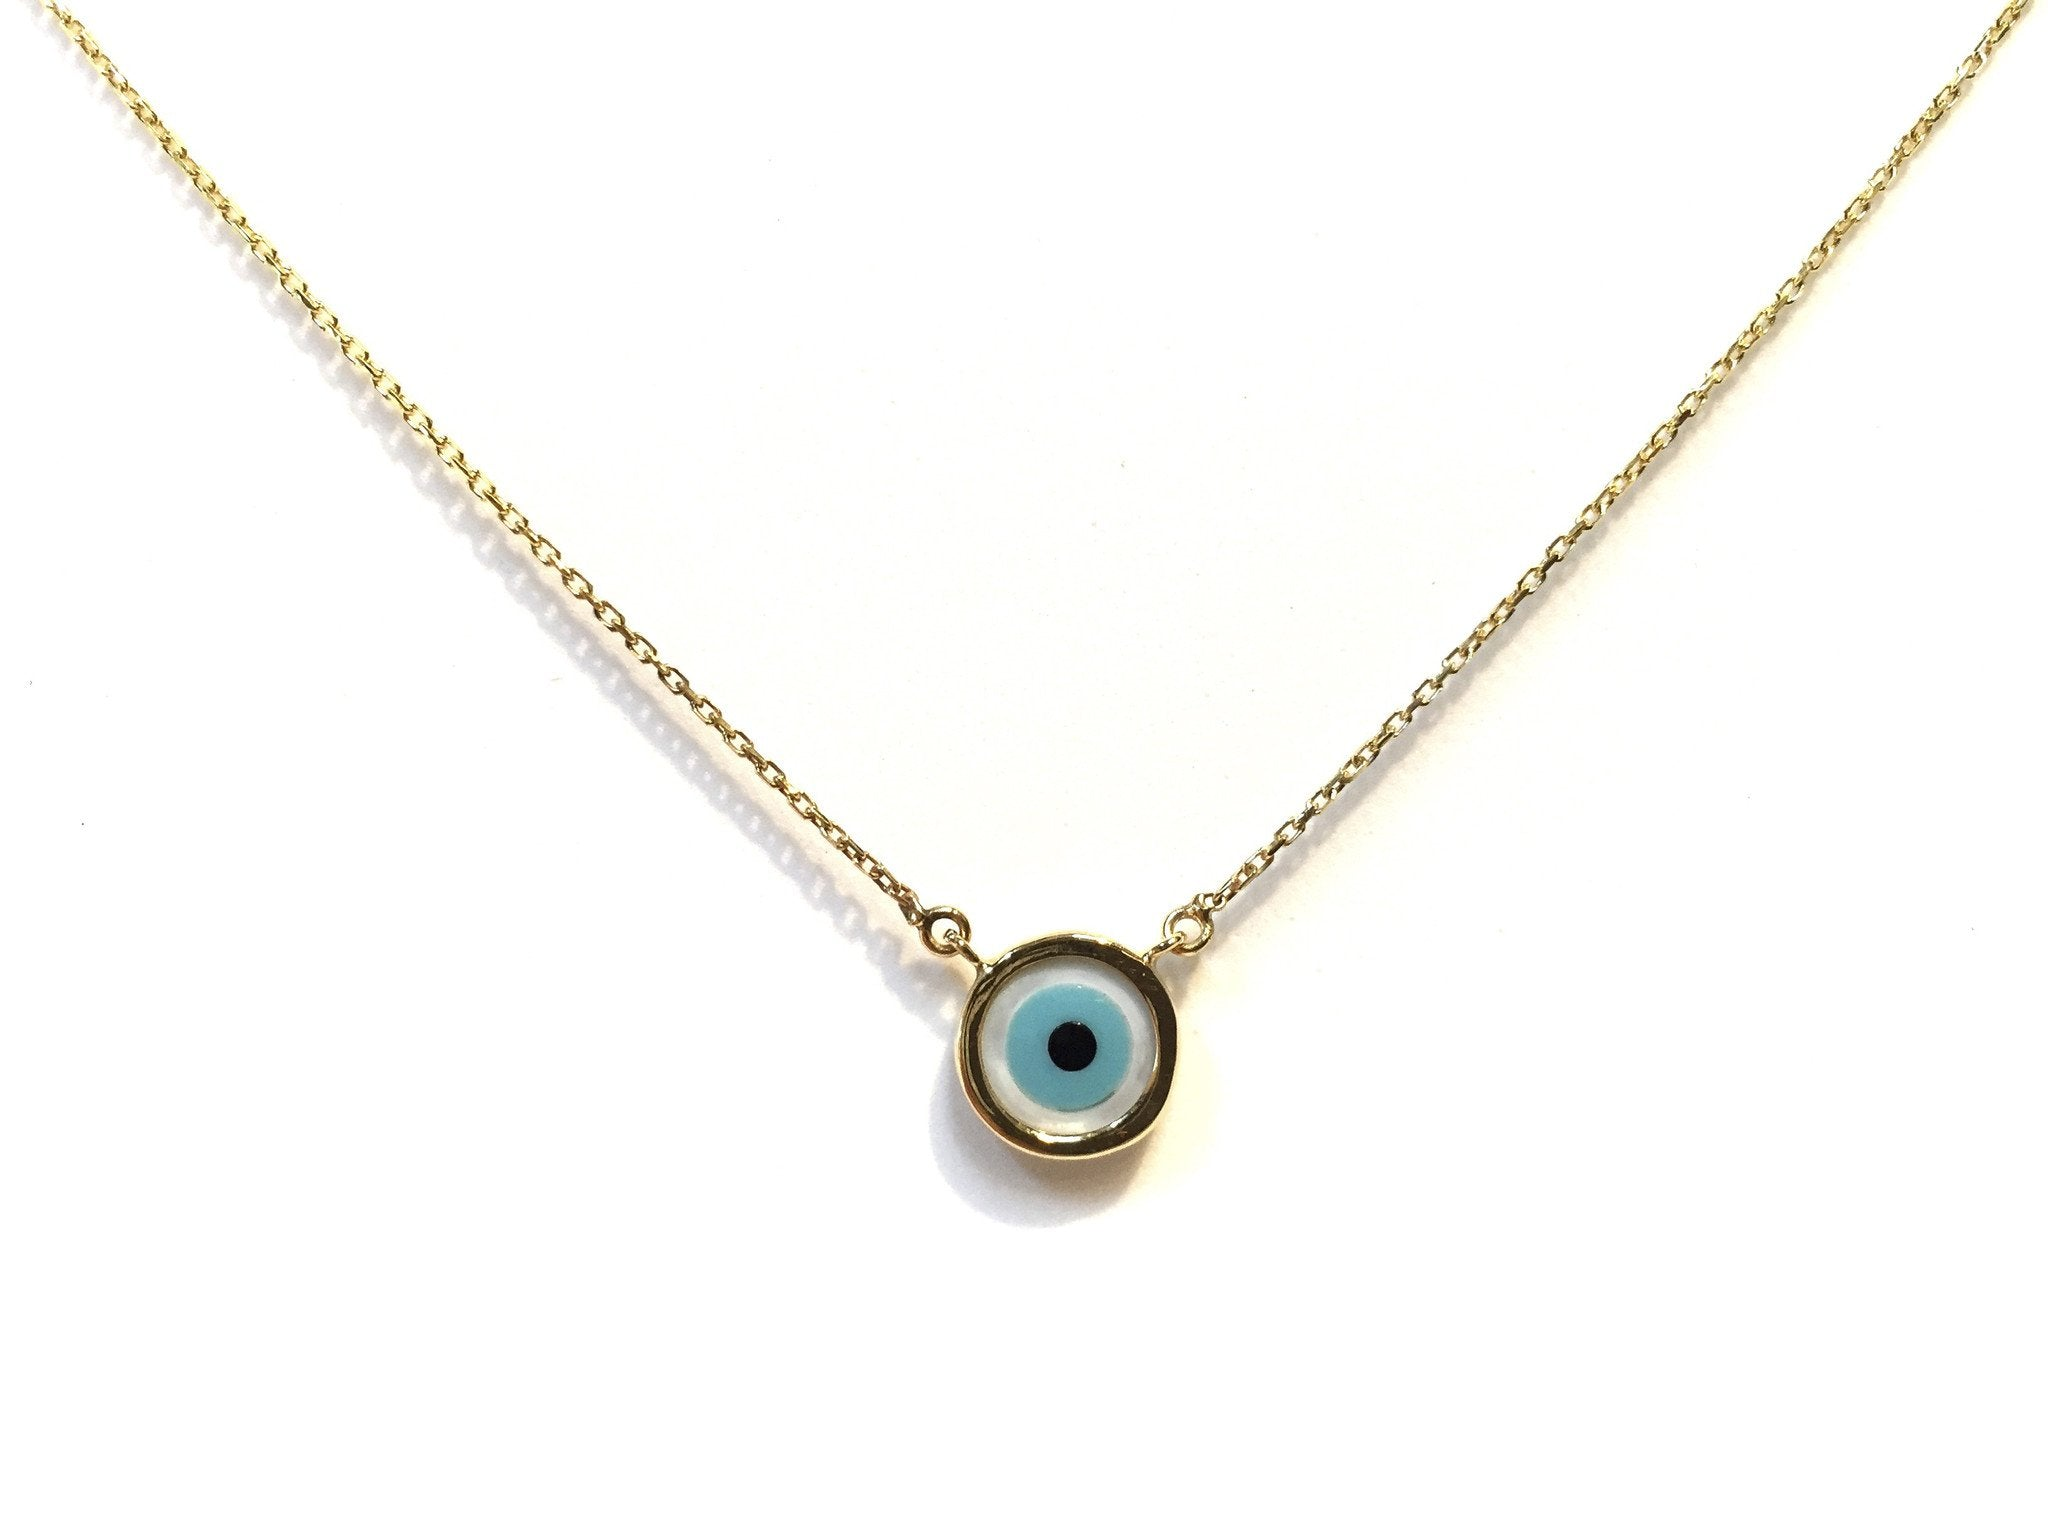 townhome taiseyen silver necklace eye evil tai